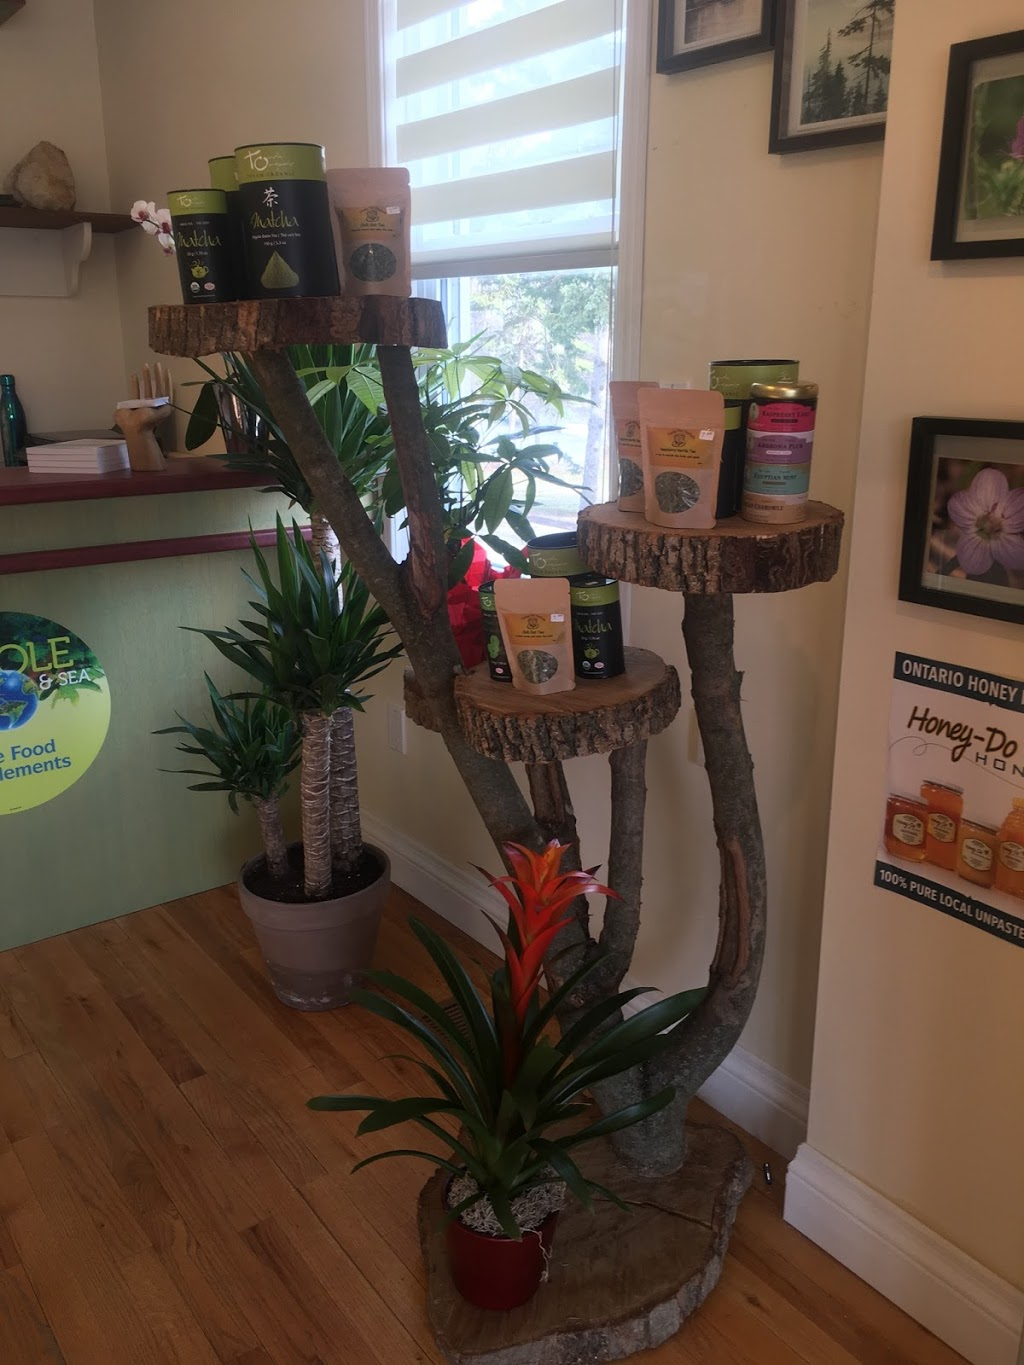 Wellness Cabin Health Co.   store   47 Ontario St S, Grand Bend, ON N0M 1T0, Canada   5198548091 OR +1 519-854-8091